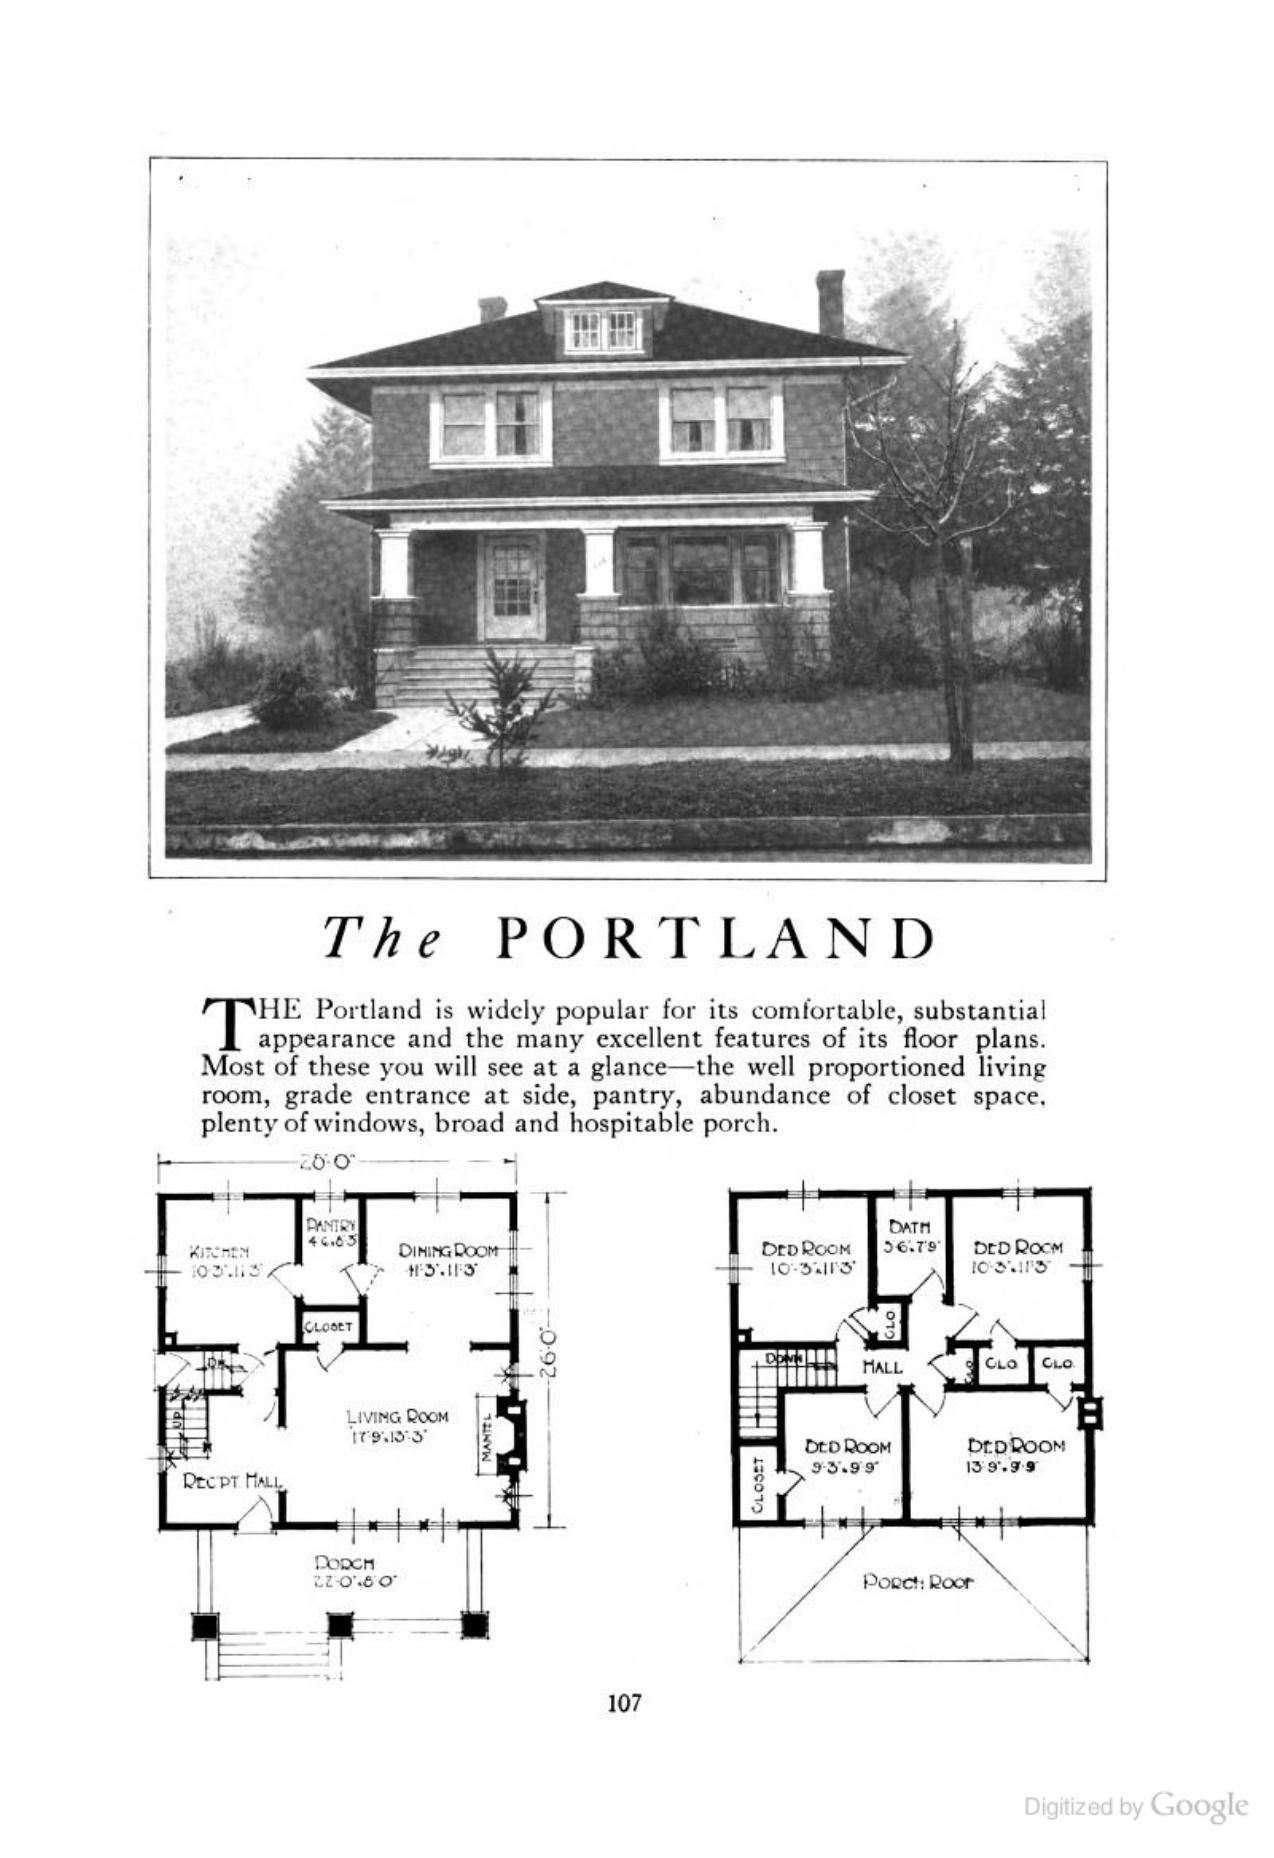 Epic The Portland an American Foursquare kit house house plan Homes of Character